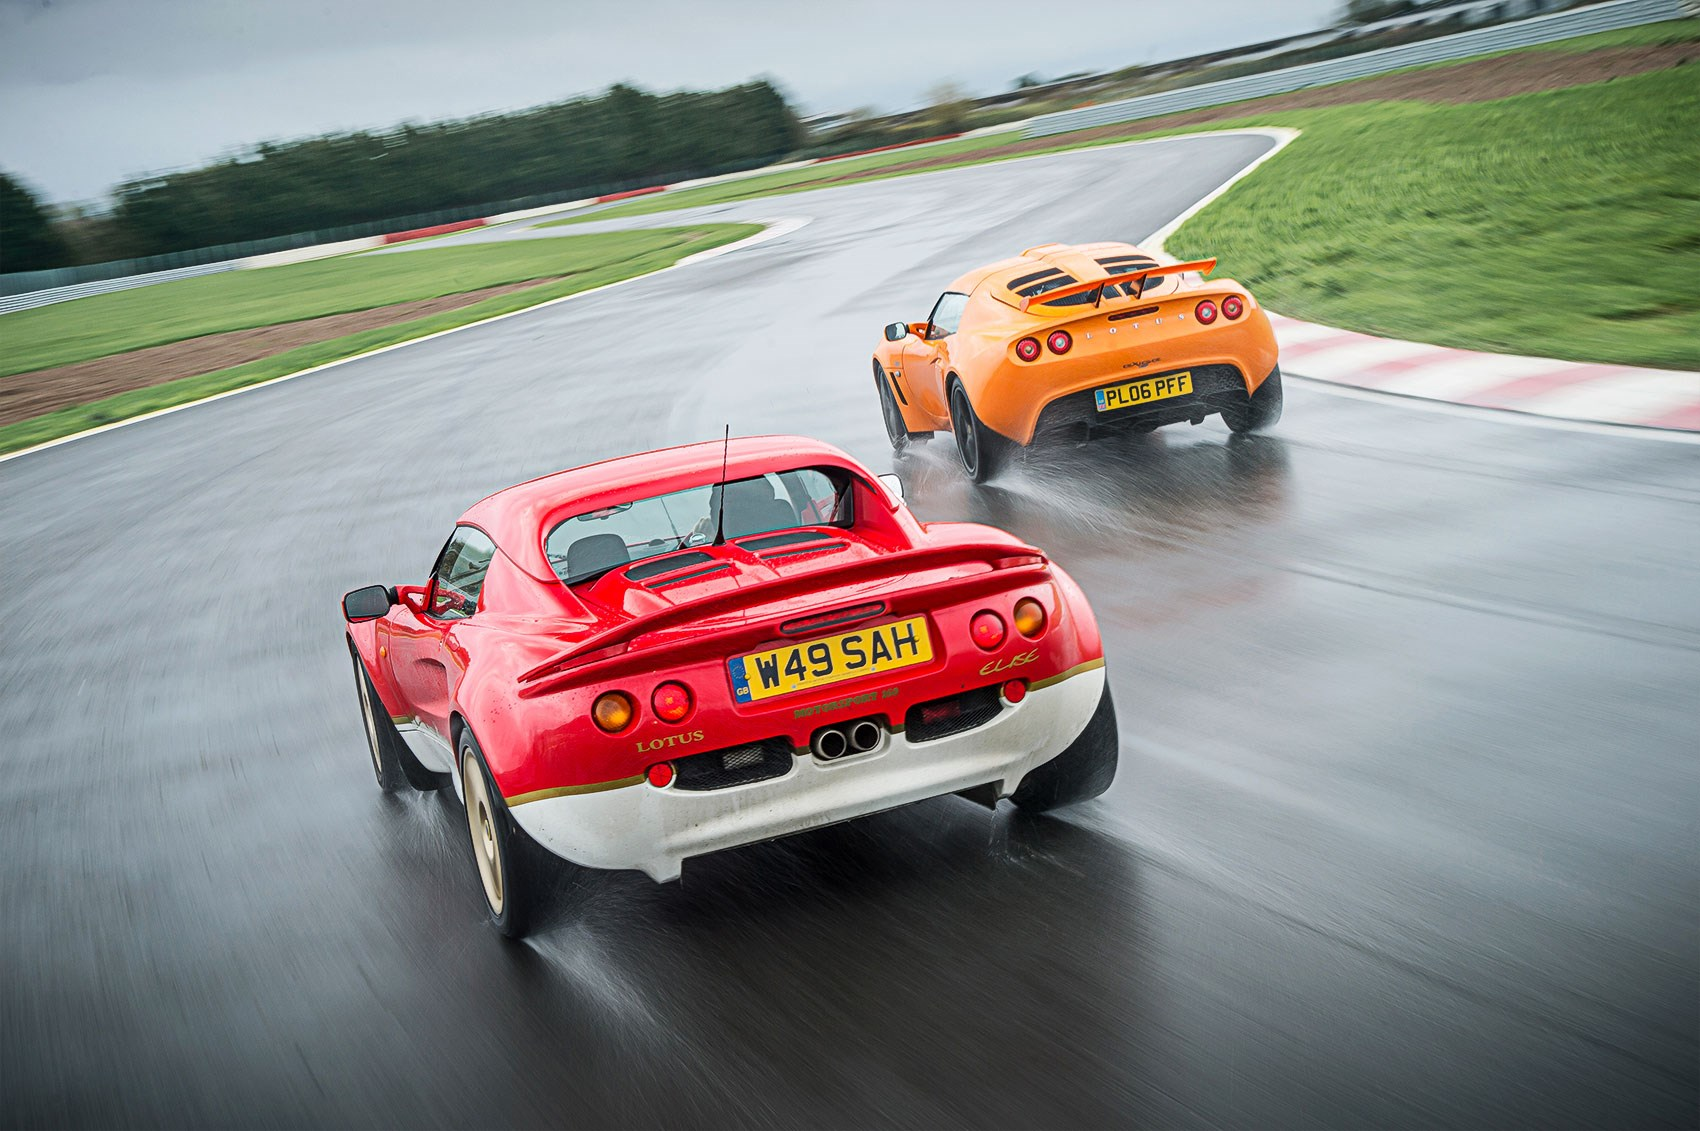 How to buy your first lotus buying guide to used elise exige the series 1 lotus elise was a revelation back in 2000 vanachro Gallery